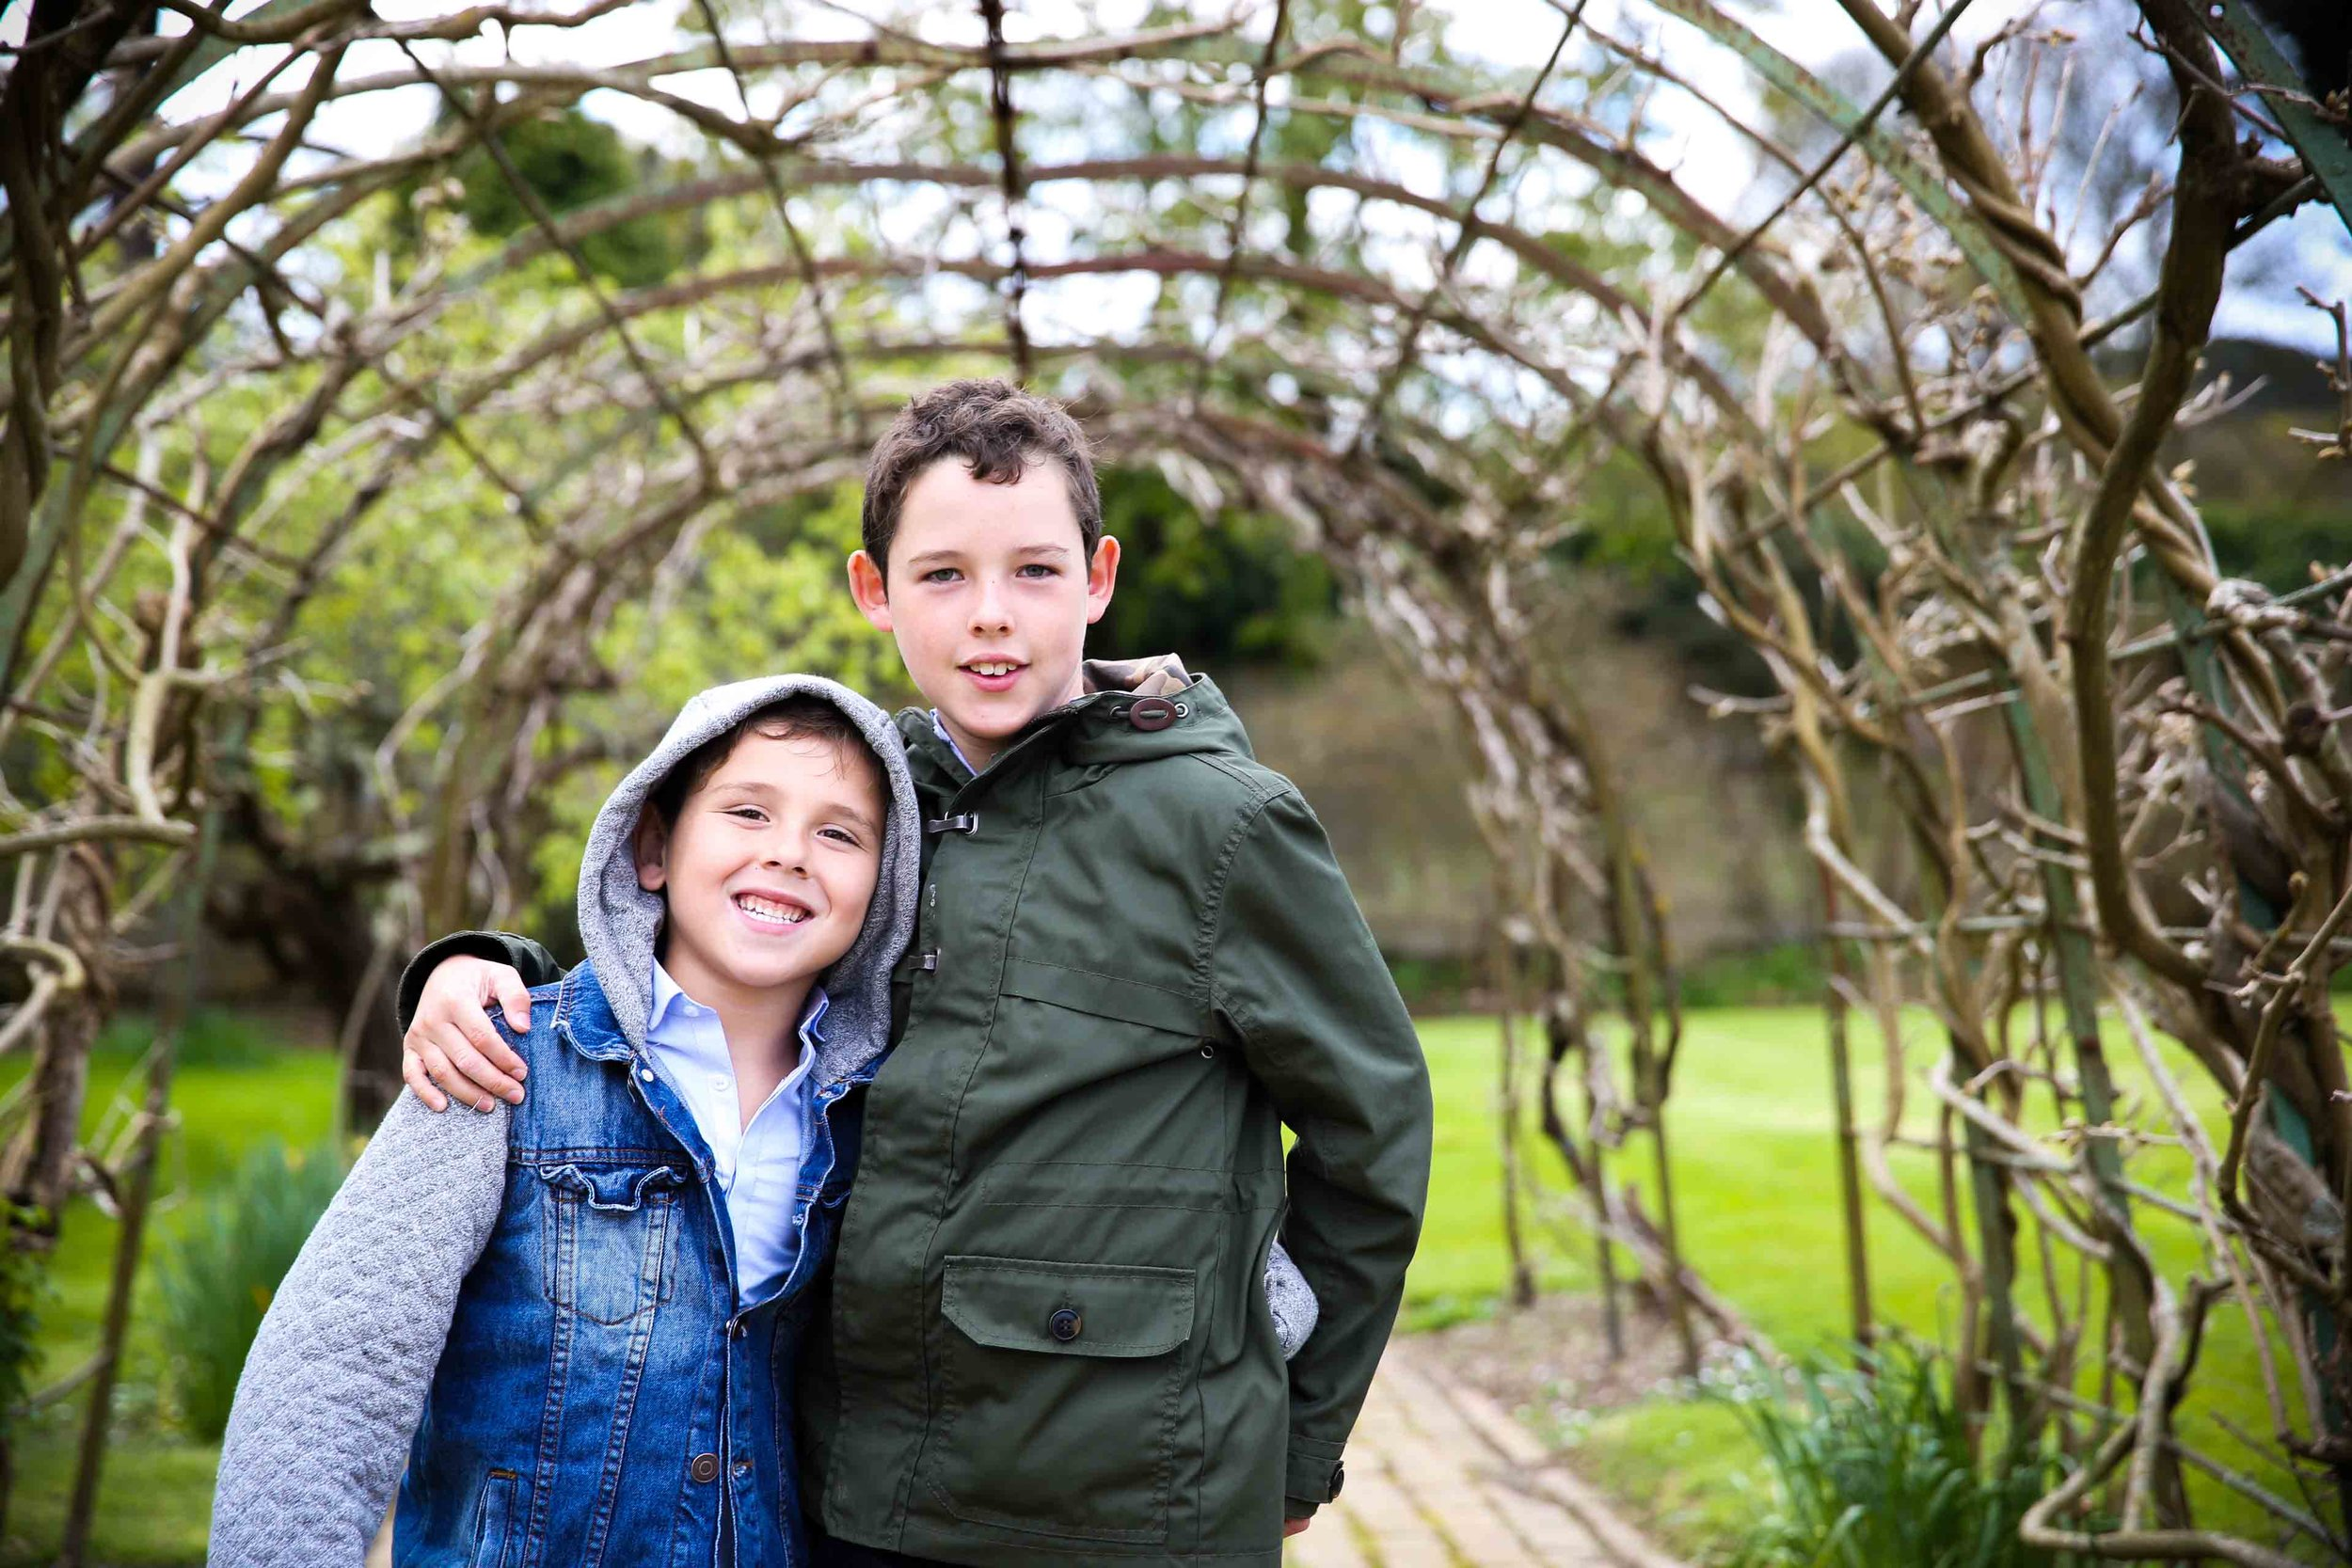 """""""I'm quite blown away by how amazing they are - a real treasure of the occasion! I wanted family shots to celebrate two special birthdays and I'm so glad I booked Bubble&Bean. Soph was great with the kids and reluctant adults to get the best shots - and believe me, everyone has complimented me since as overjoyed with the photos. We will be rebooking...thoroughly recommended!"""" Victoria"""